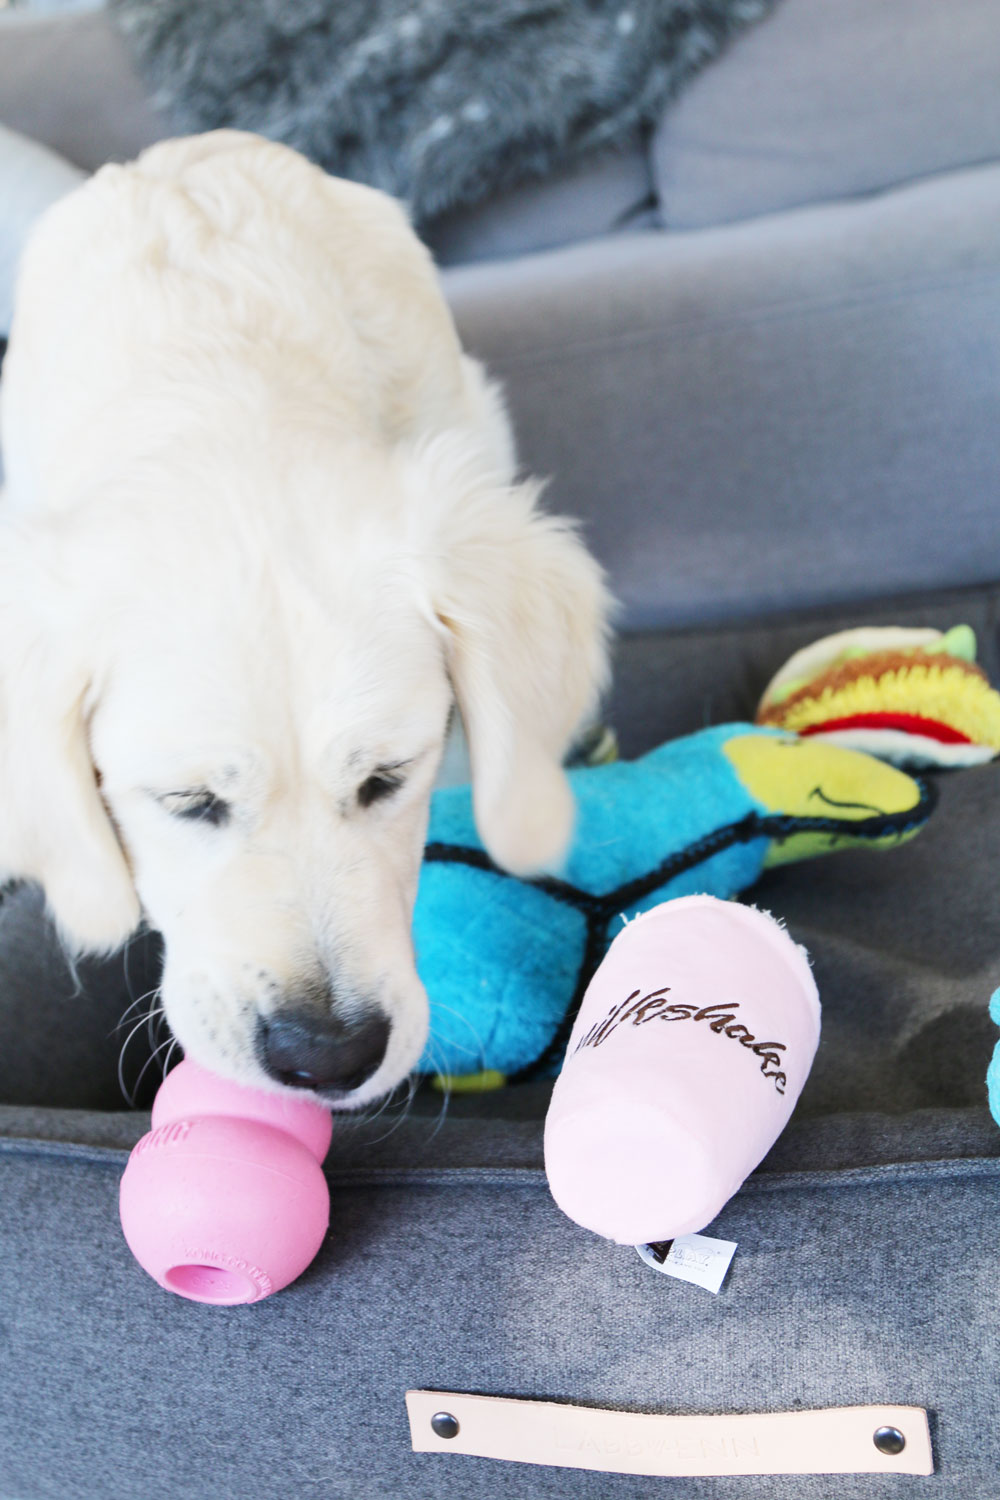 Expert tips on how to choose safe, durable, quality dog toys your dog will love - and how to spot an imitation. For treat balls, rope, plush and more.